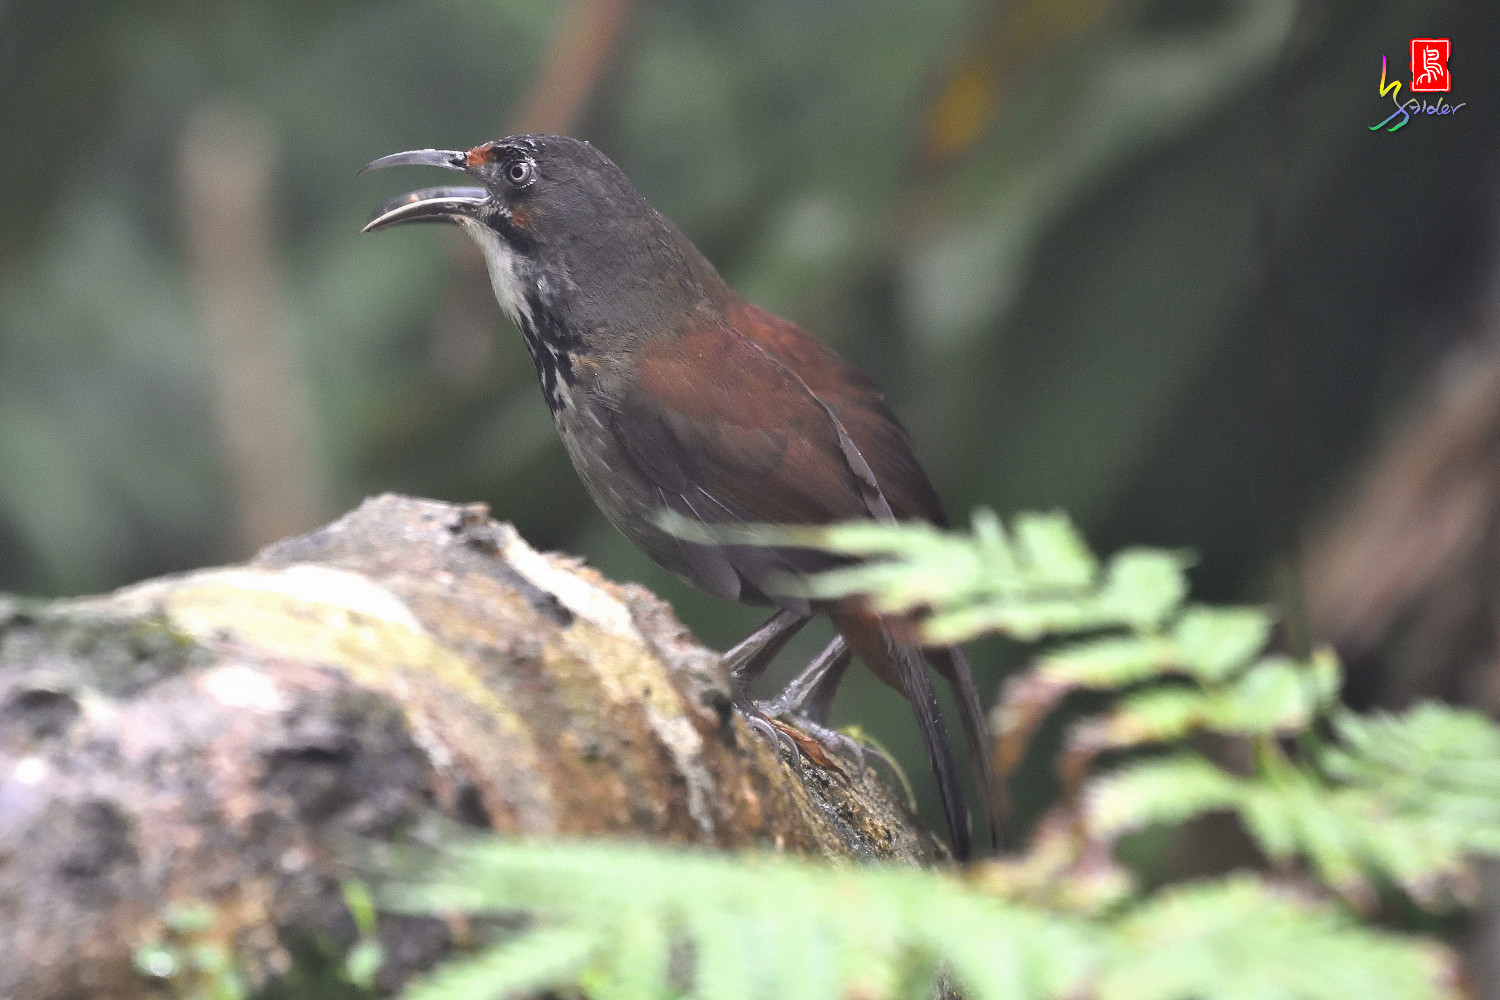 Rusty-cheeked_Scimitar-babbler_4416